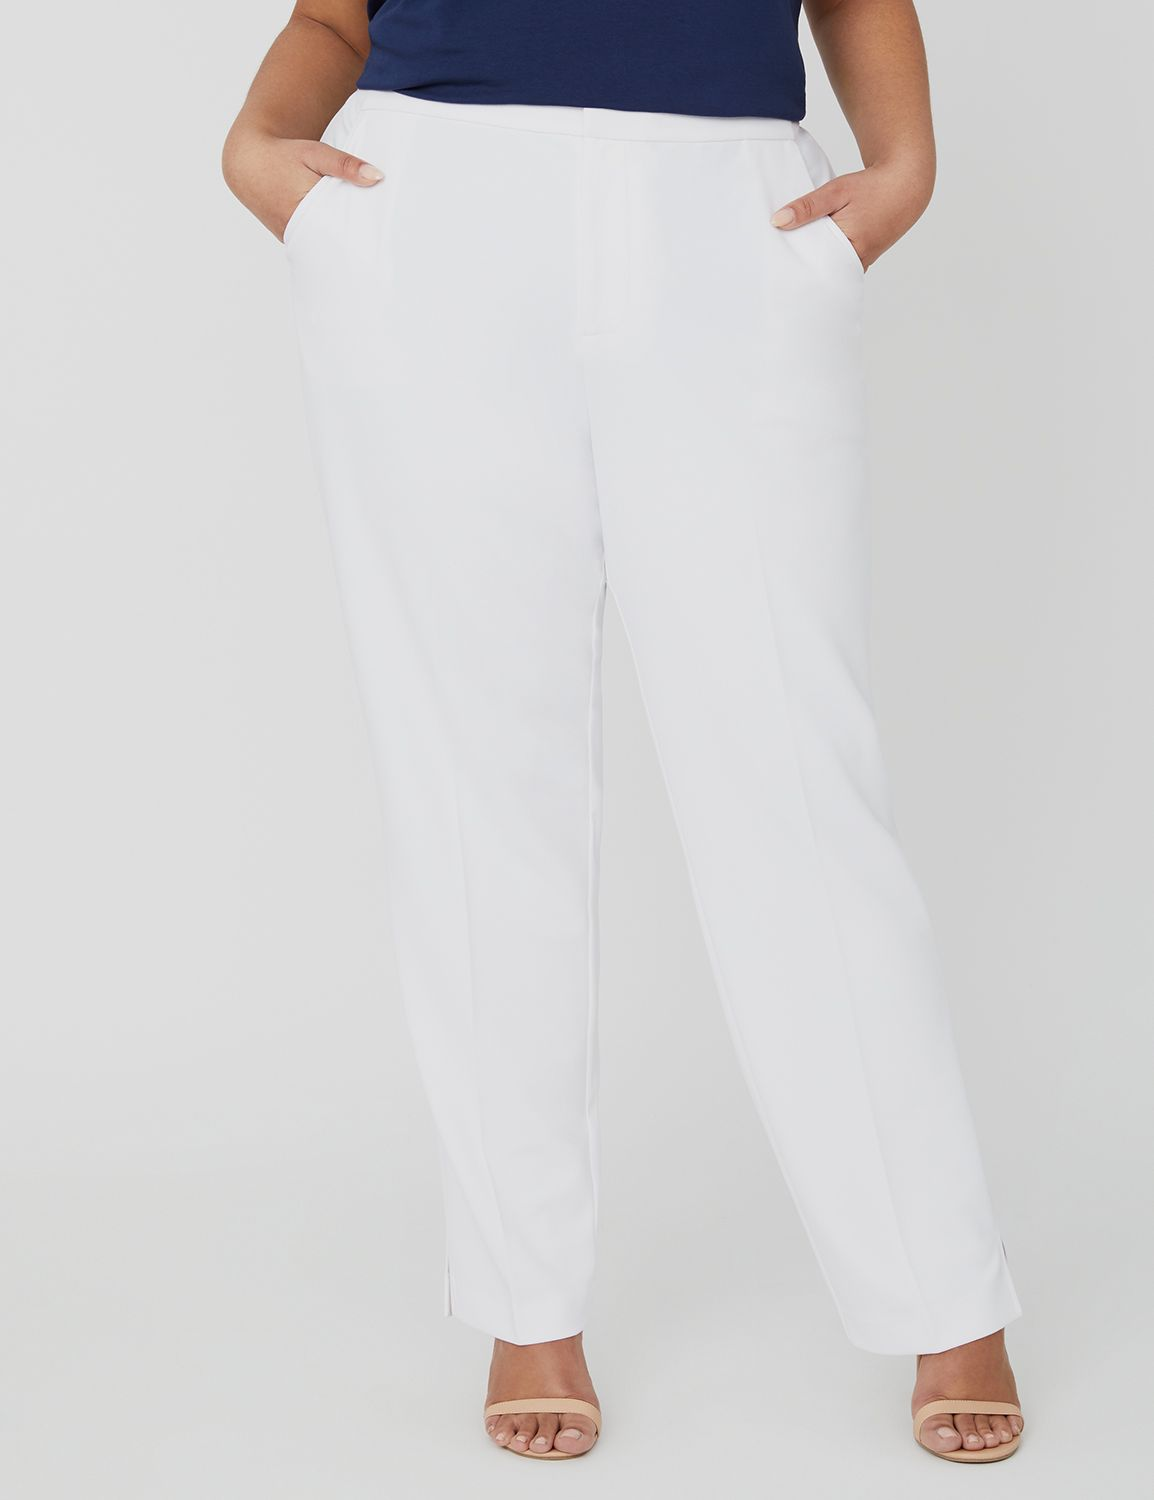 Black Label Soft Crepe Pant 1088525 Soft Crepe Pant with Elasti MP-300098647